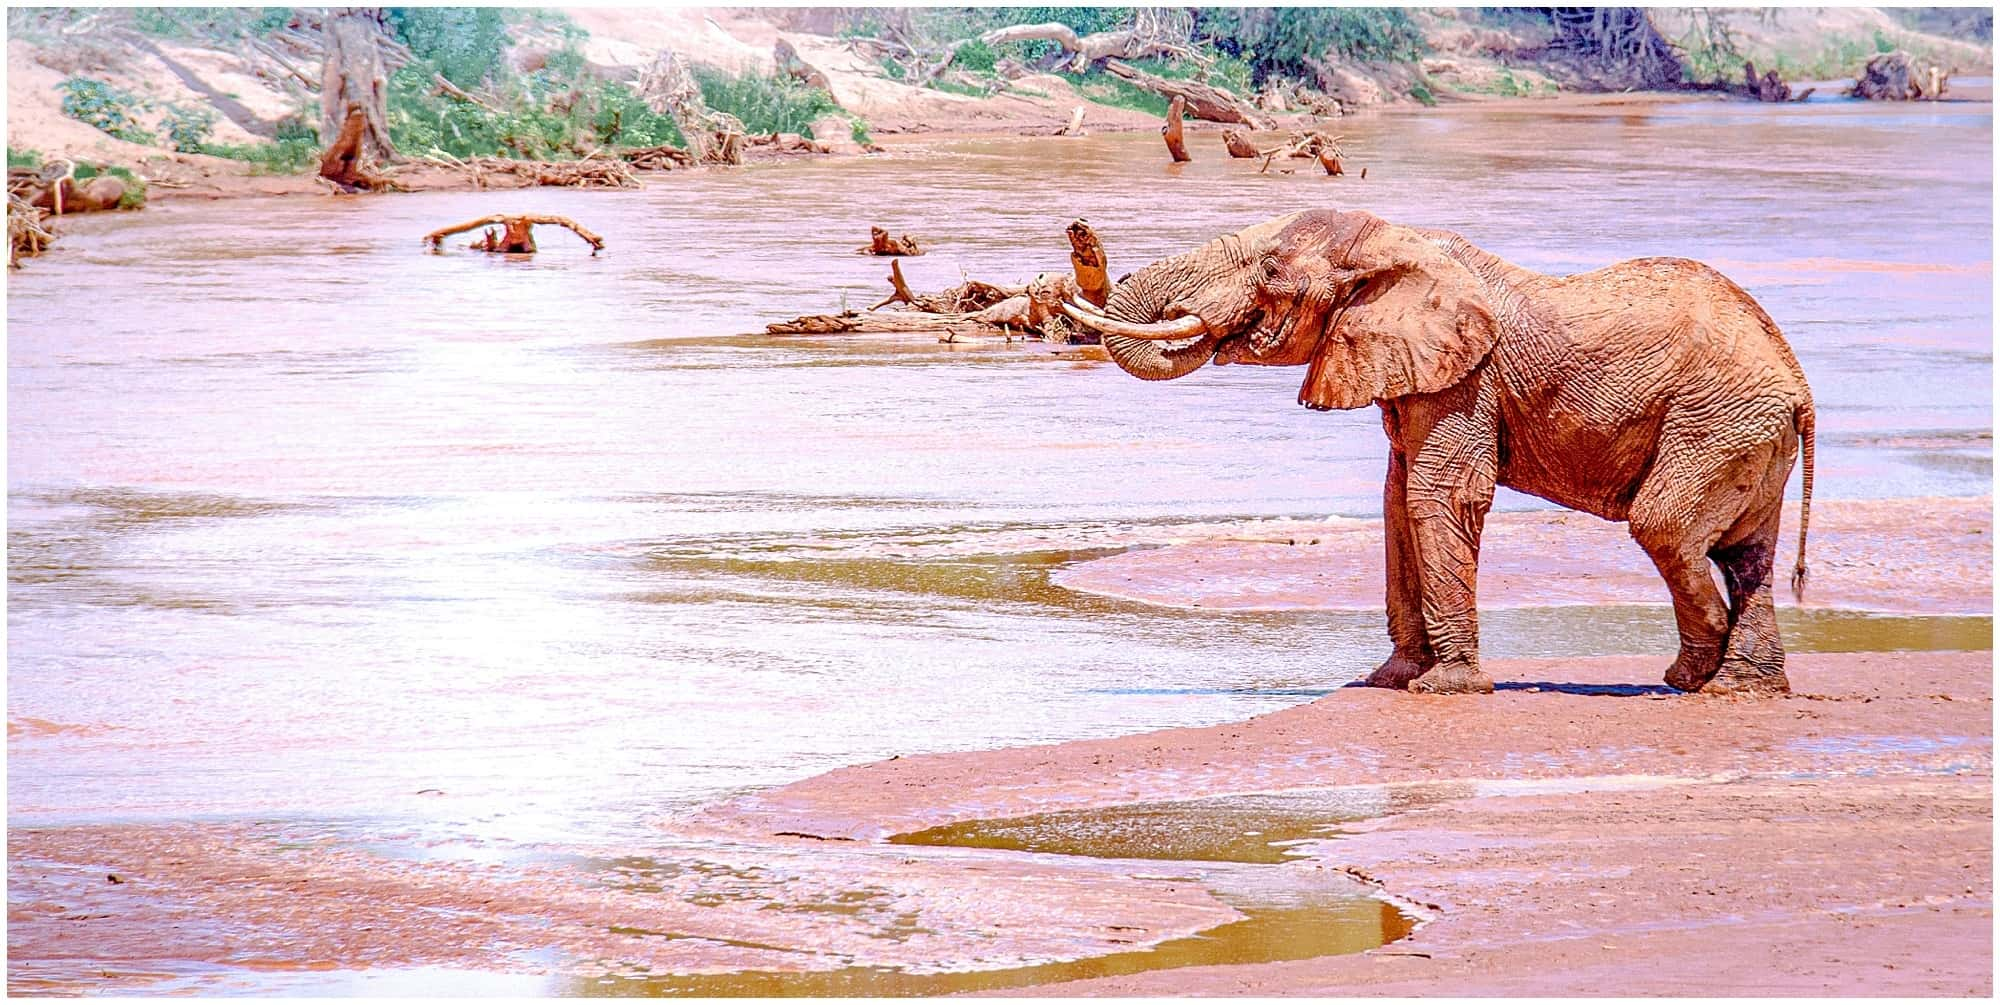 Elephant standing at the river edge in Kenya